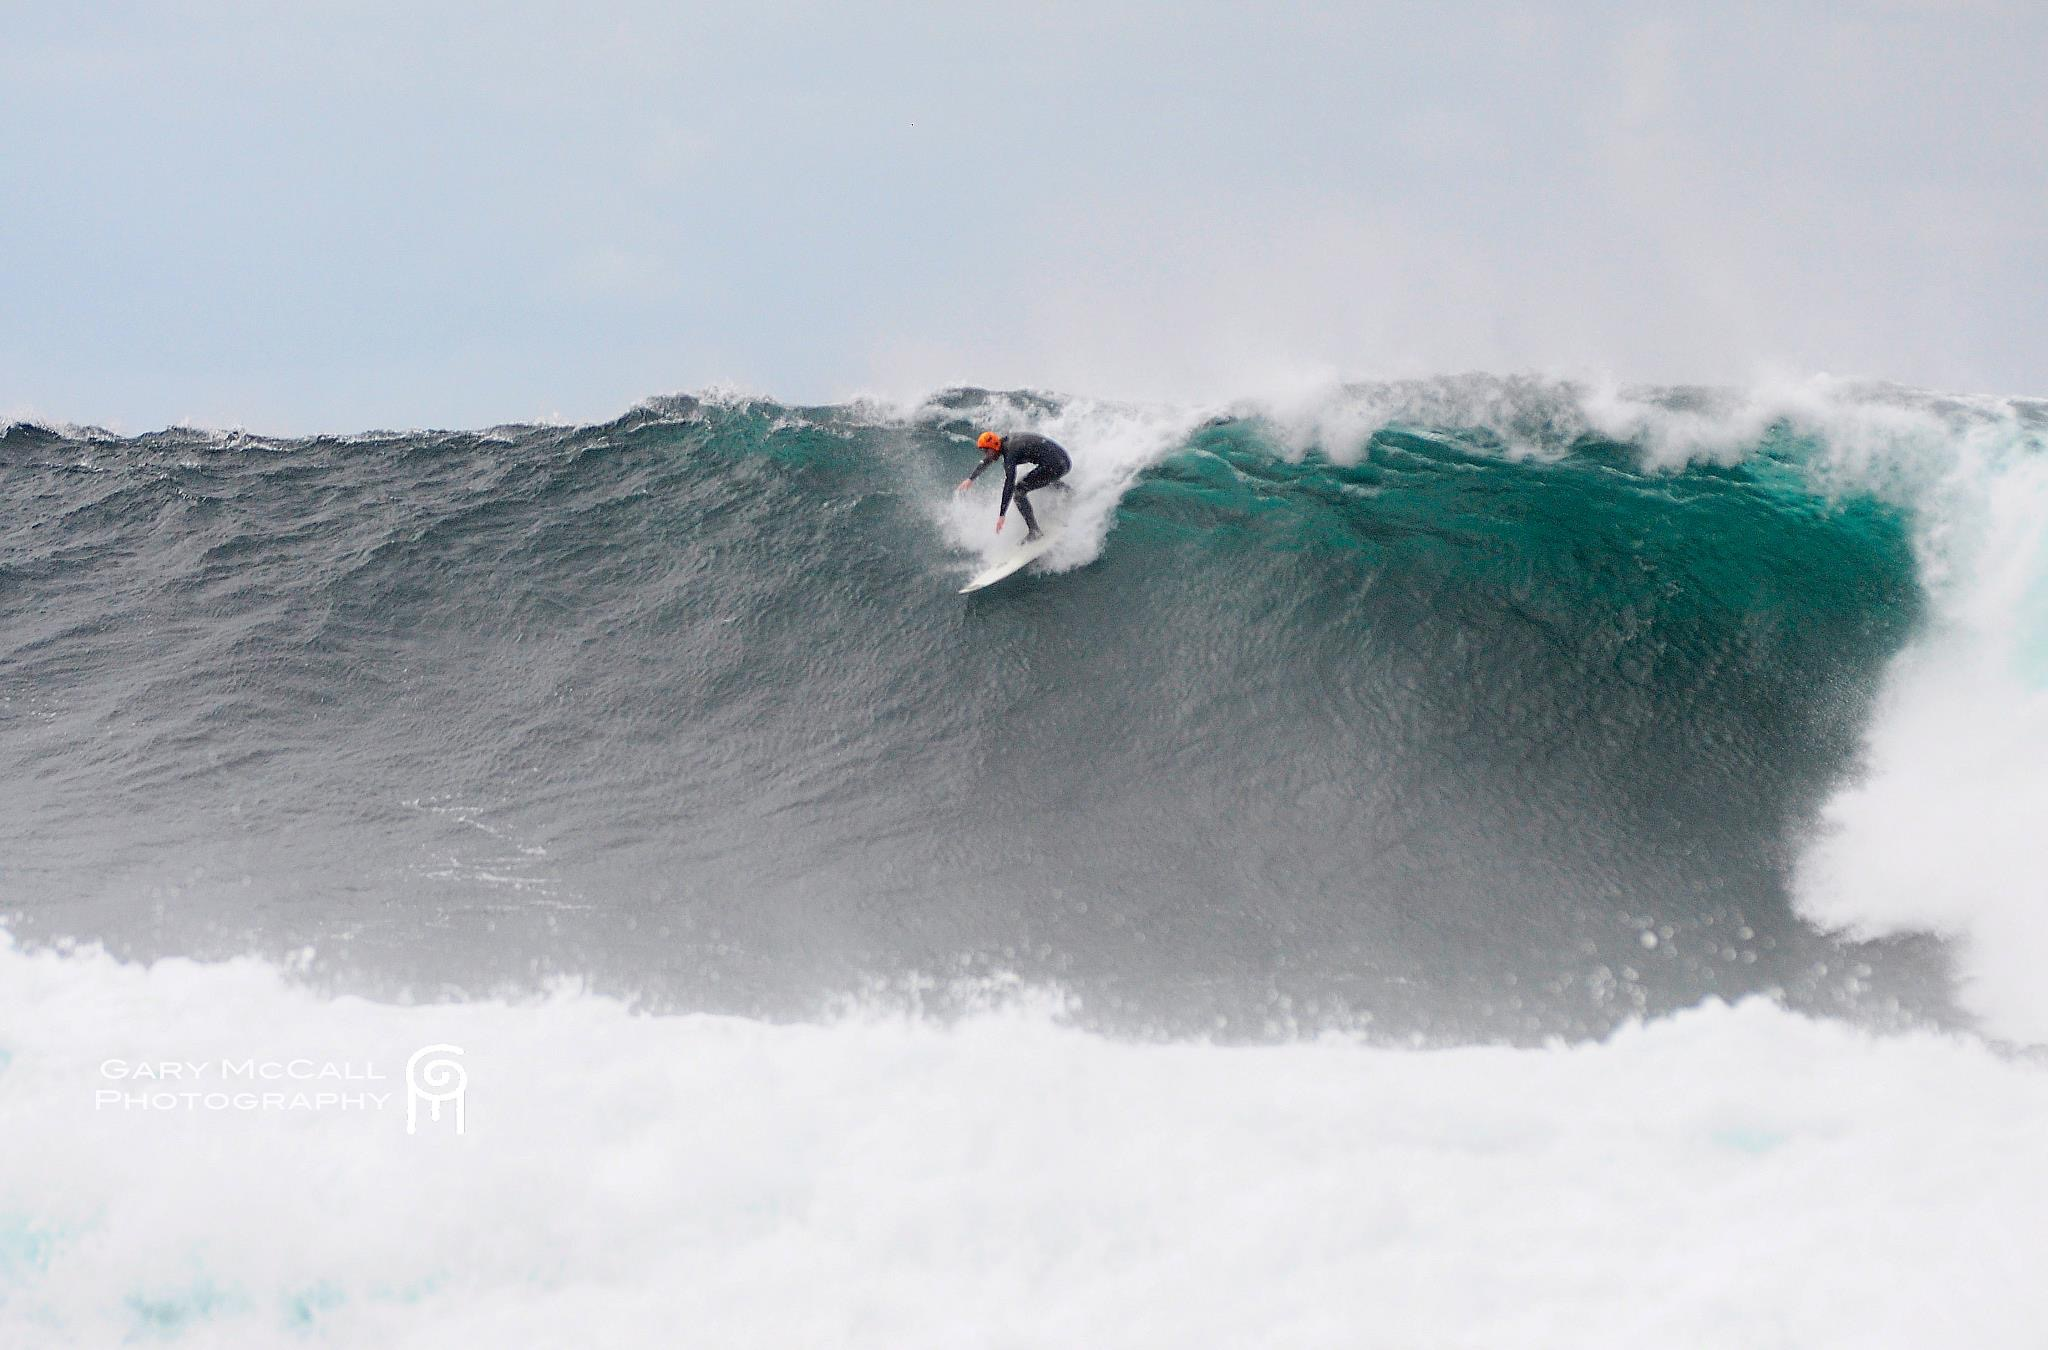 Al Mennie big wave surfing, ireland